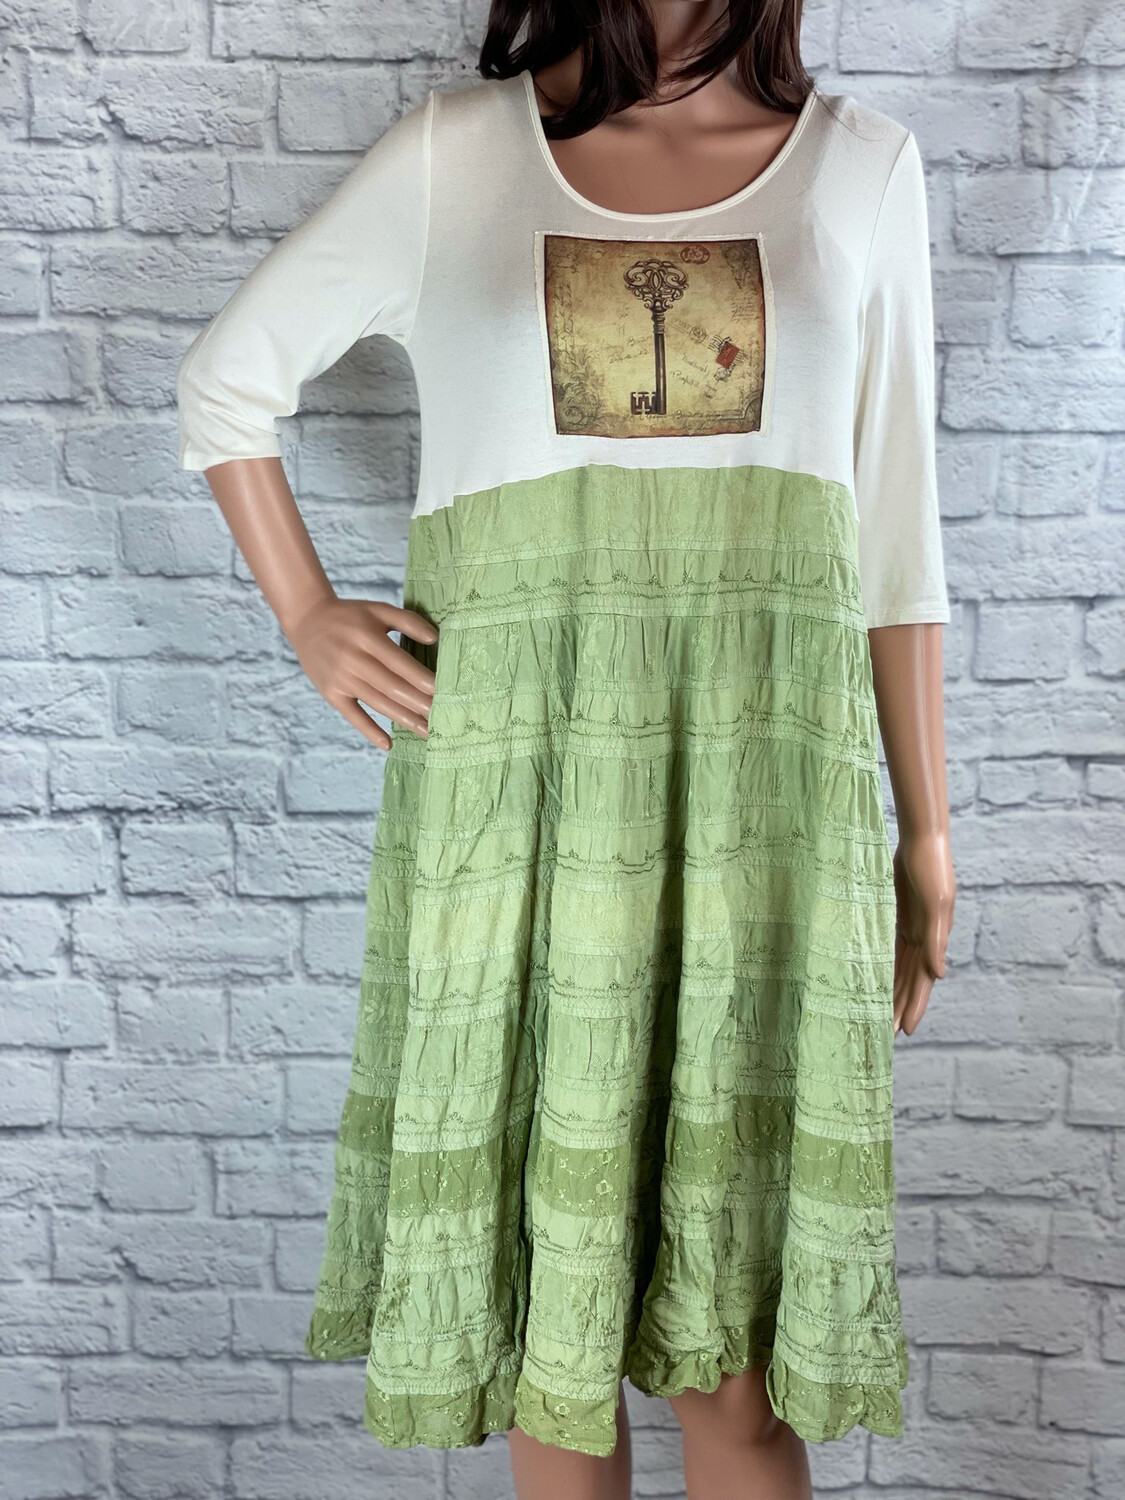 S Threads Upcycled Dress Cottage Key Layers Size M/L/XL